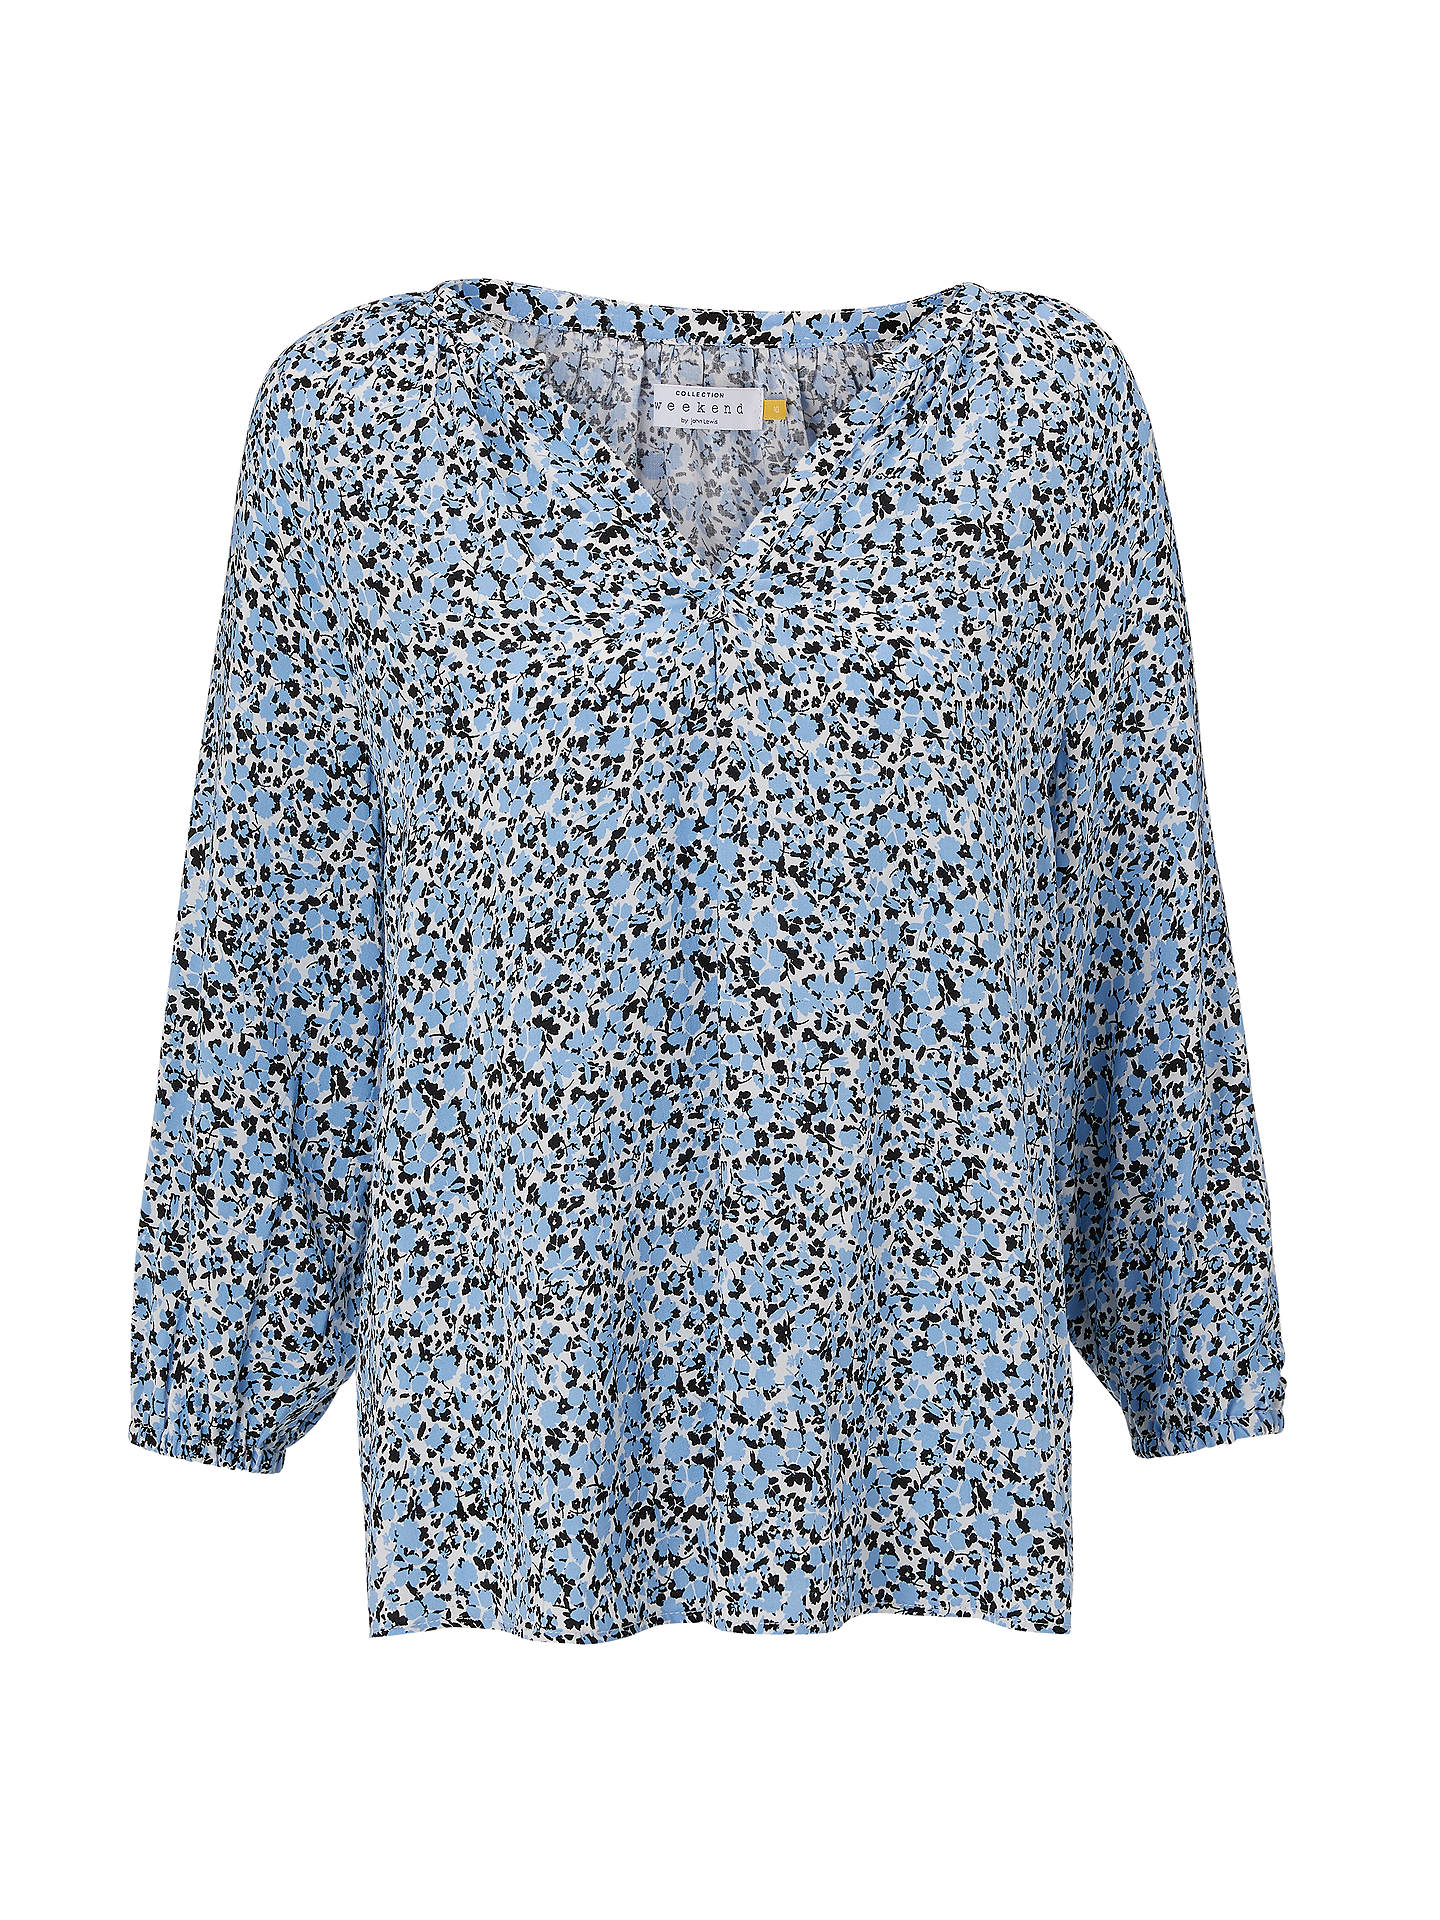 BuyCollection WEEKEND by John Lewis Lavinia Abstract Floral Top, Blue/Black/White, 8 Online at johnlewis.com